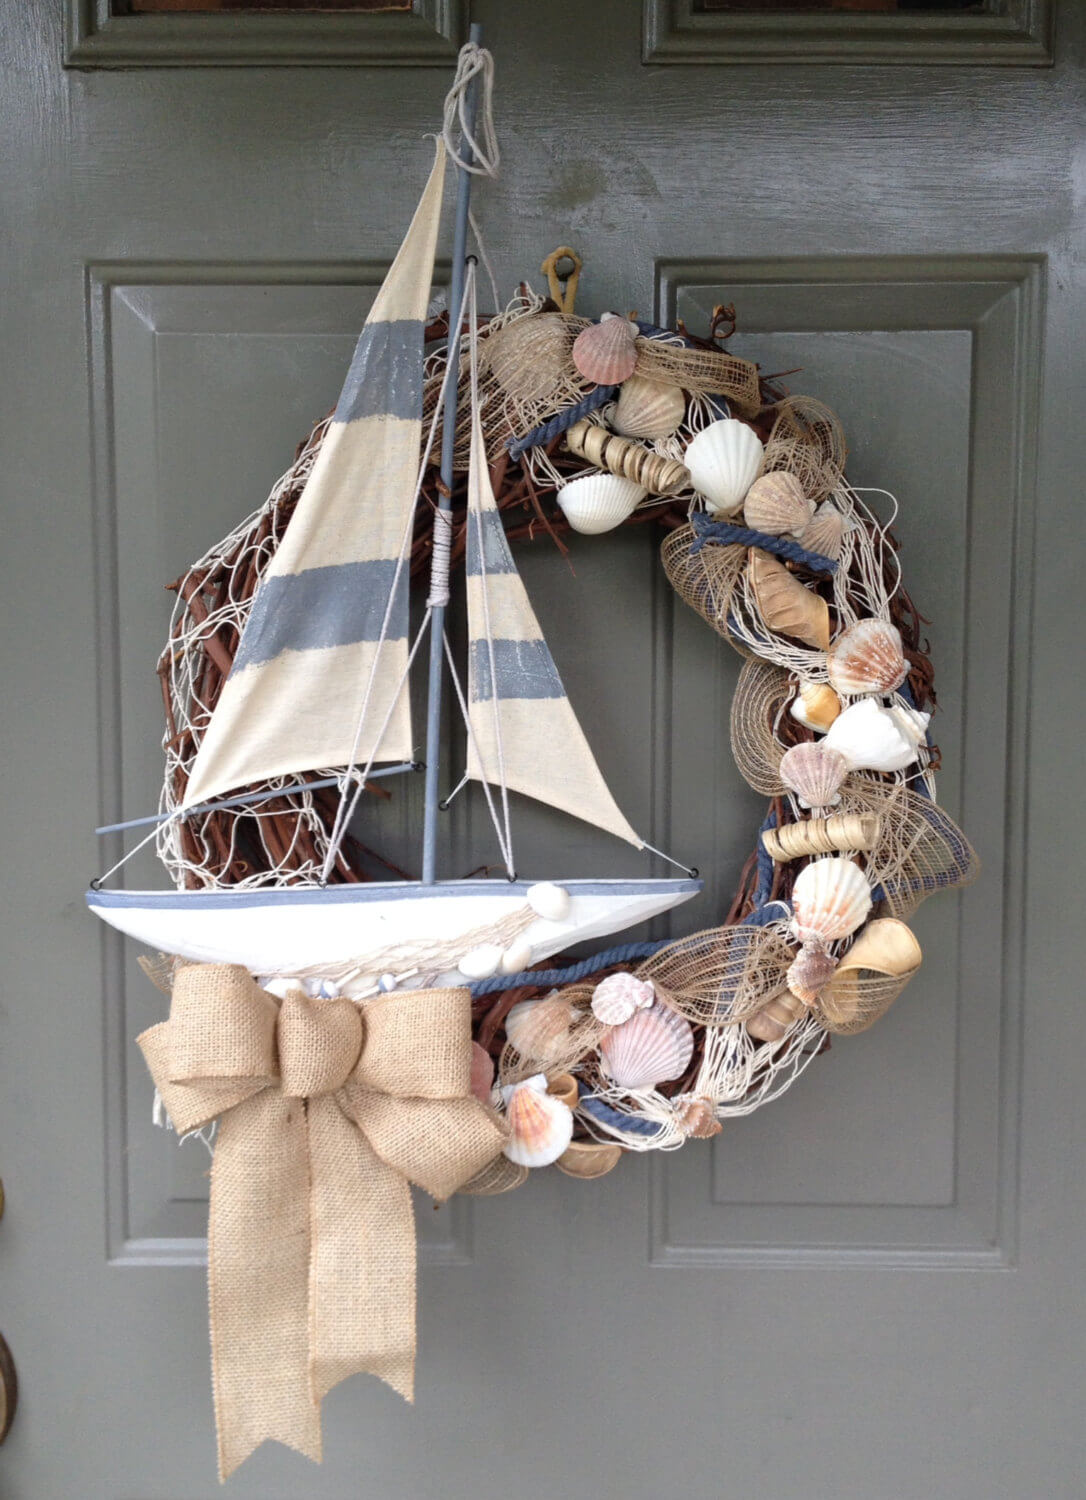 Ocean Themed Wreath with a Sailboat